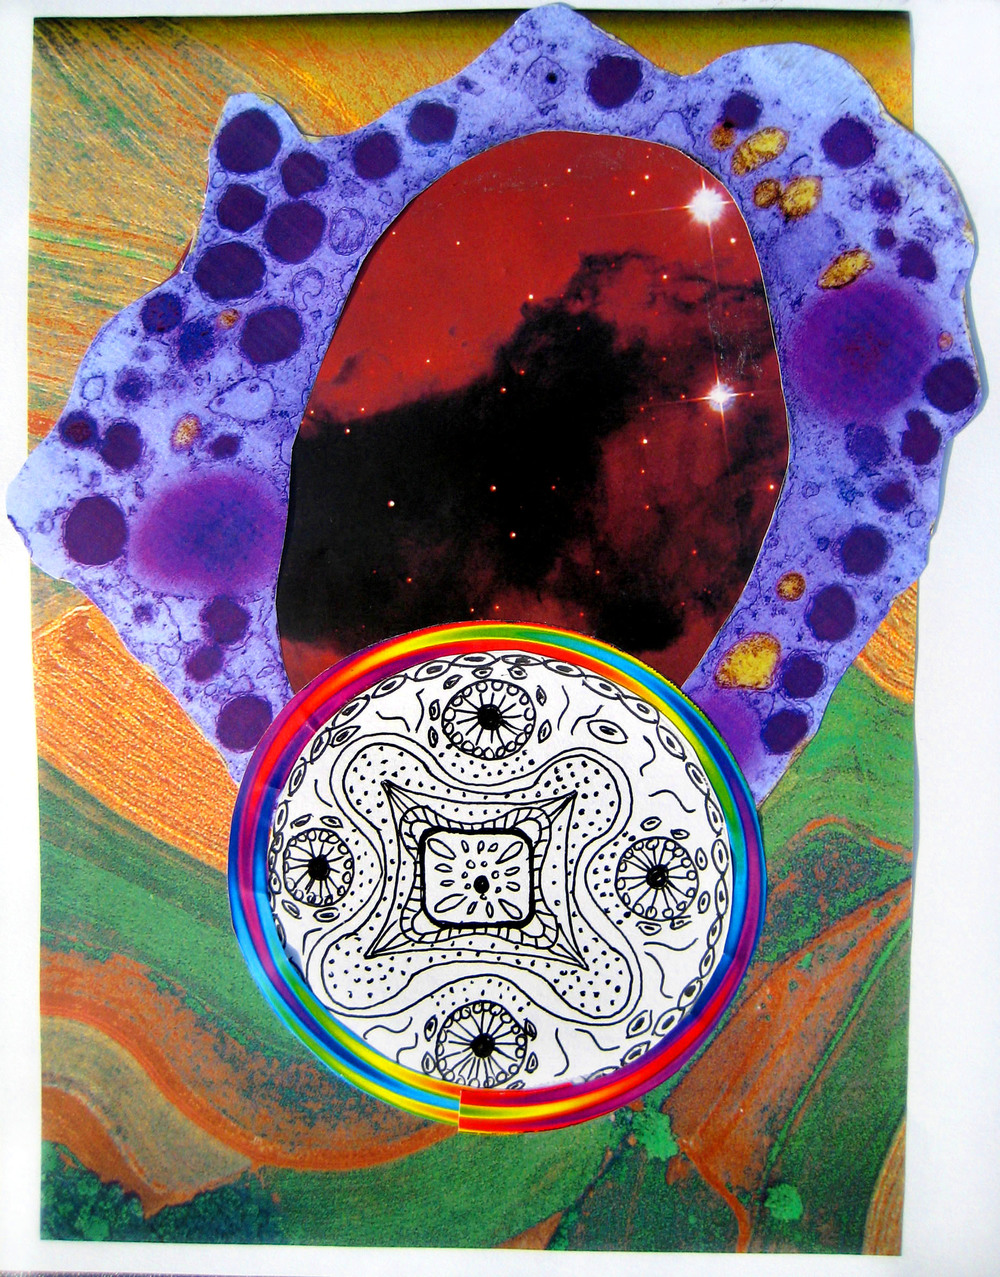 "Rainbow Mandala, collage on paper, 8.5"" x 10.5"", 2008"